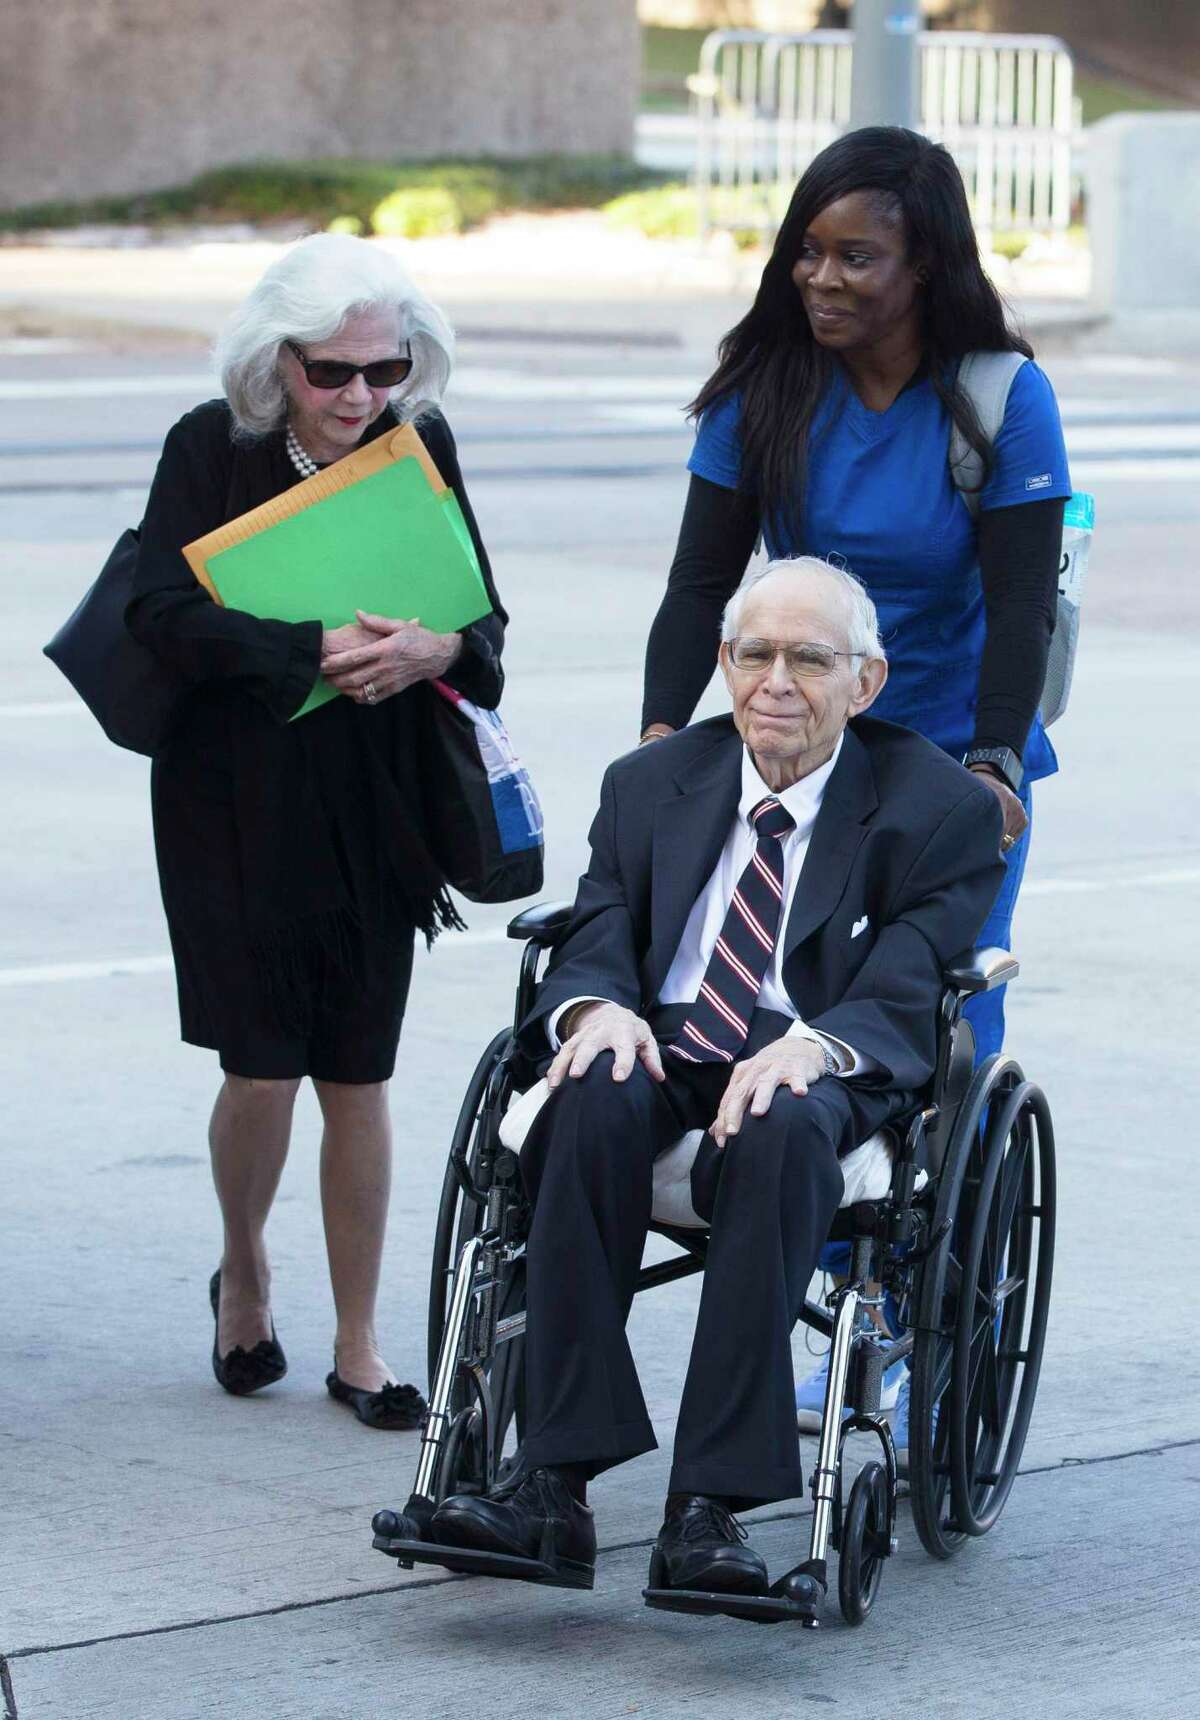 James Dannenbaum and wife Shirley Dannenbaum arrive to the Bob Casey United States Courthouse to appear in court on allegations of election fraud on Friday, Dec. 6, 2019, in Houston. Dannenbaum, a former University of Texas regent and ex-CEO of an influential engineering firm, pleaded guilty to campaign finance fraud.